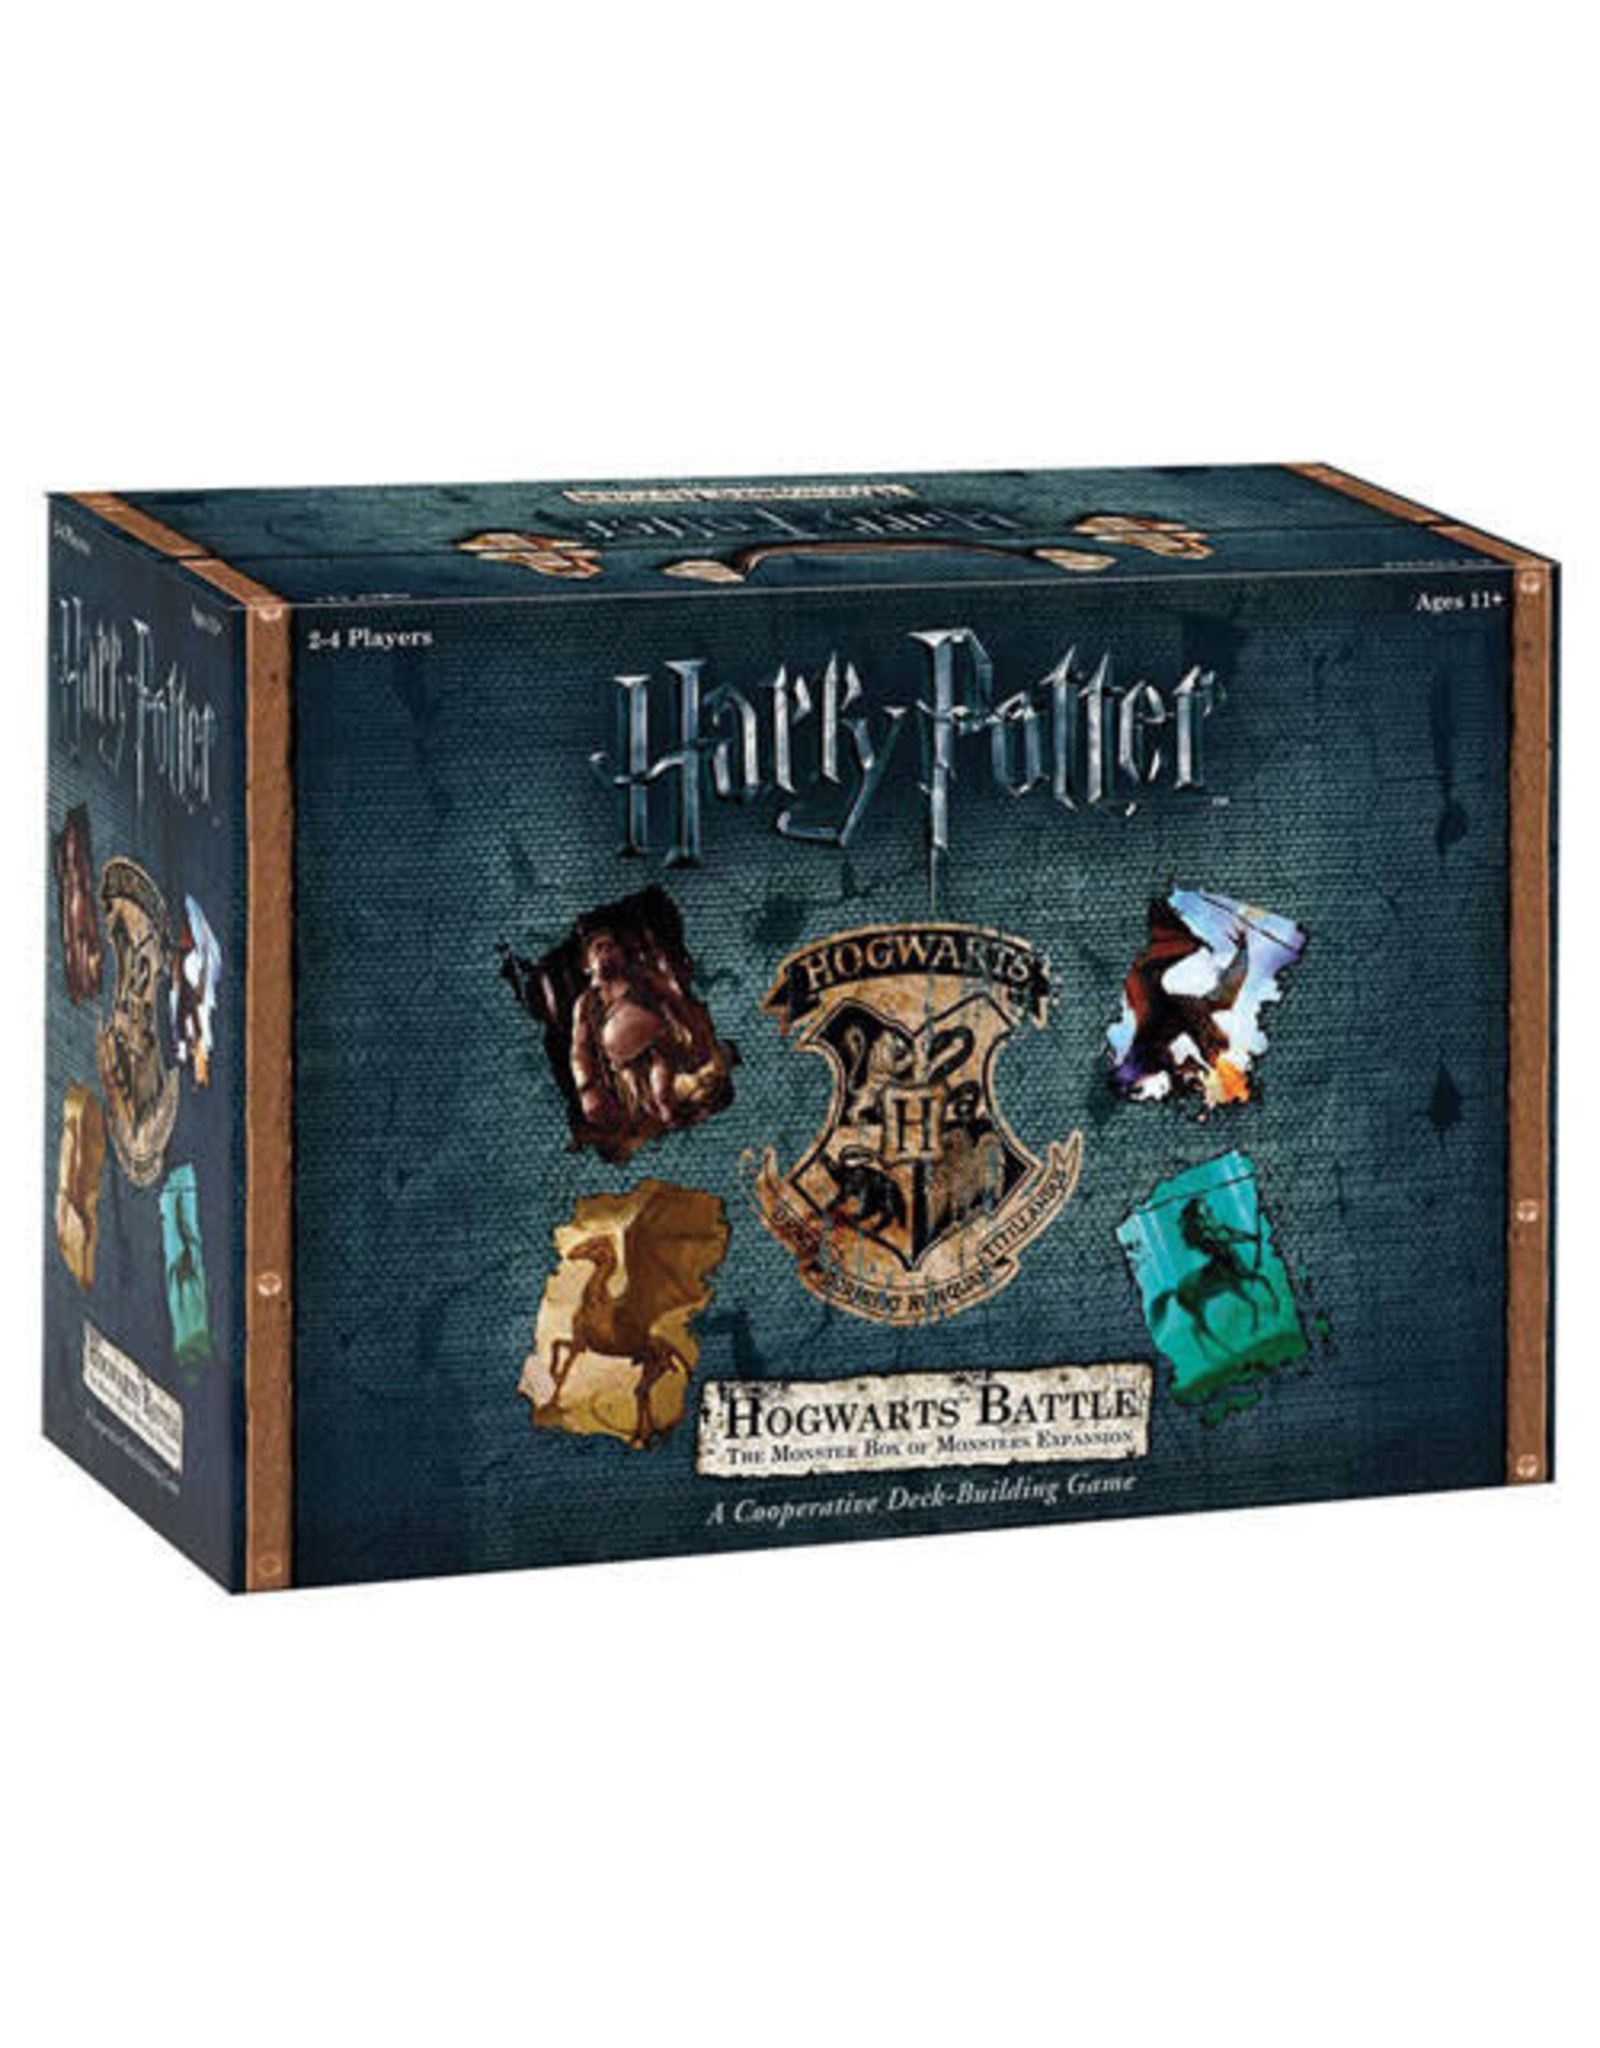 The OP Harry Potter: Hogwarts Battle DBG - The Monster Box of Monsters Expansion